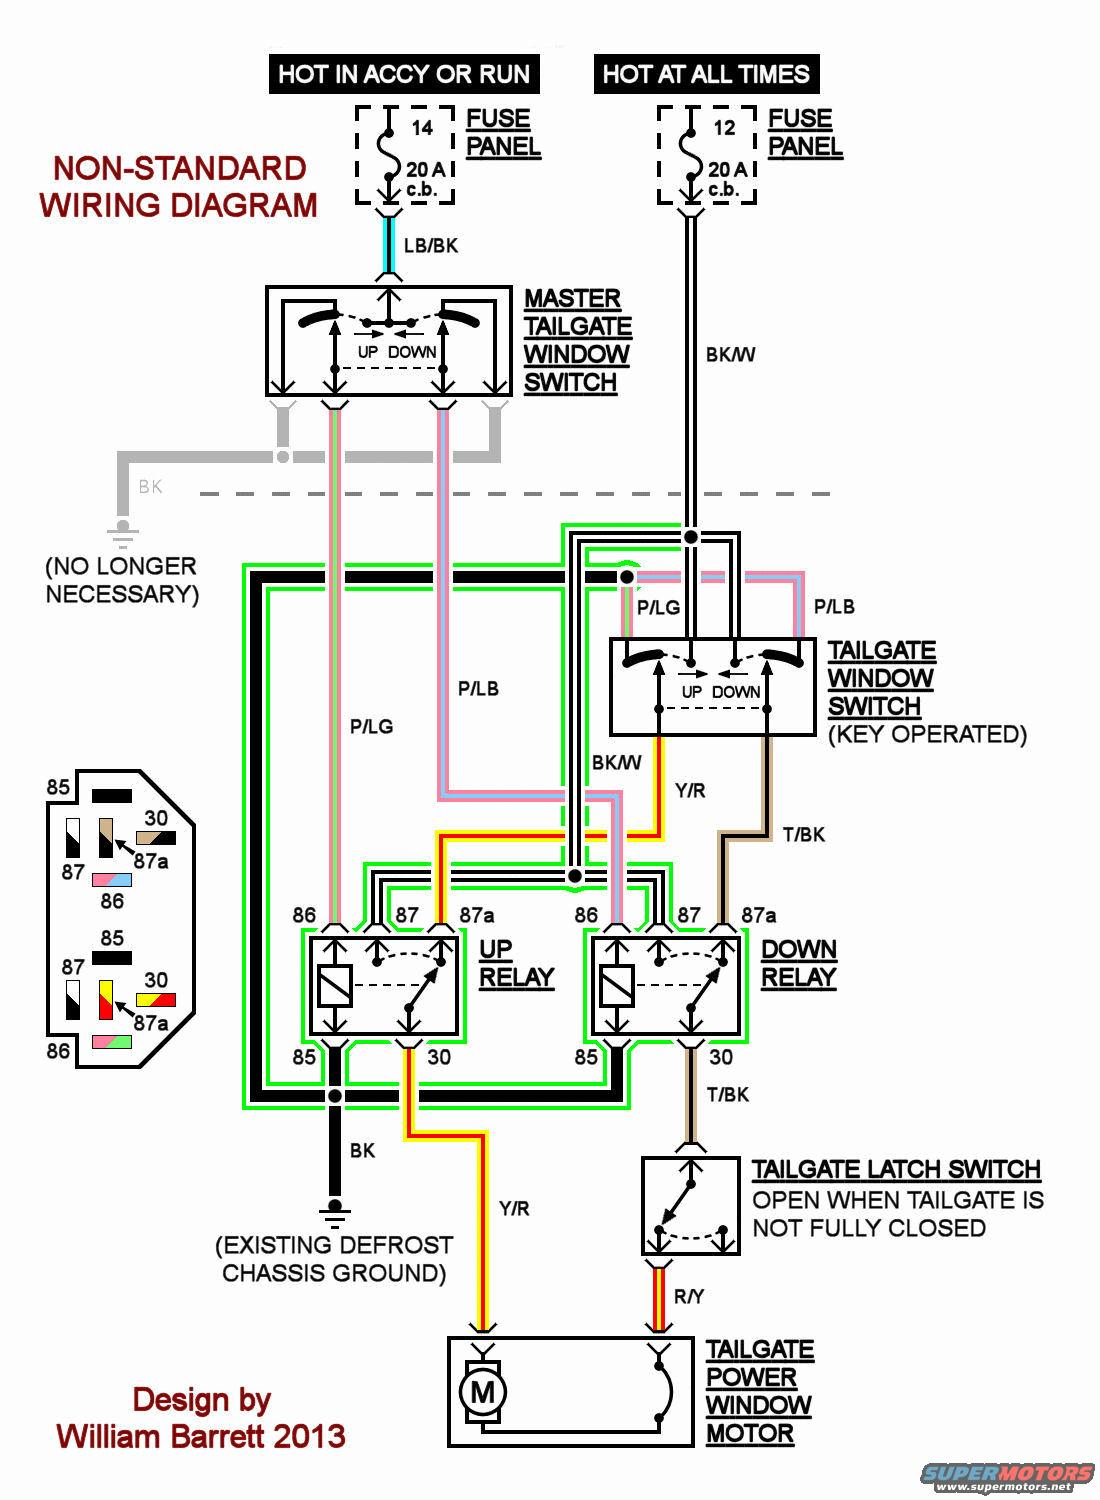 1991 Ford Bronco Rear Window Wiring Diagram 1972 Ignition Switch Tailgate Rewire Works 100x Better Page 2 Forum Rh Fullsizebronco Com 1993 Starter